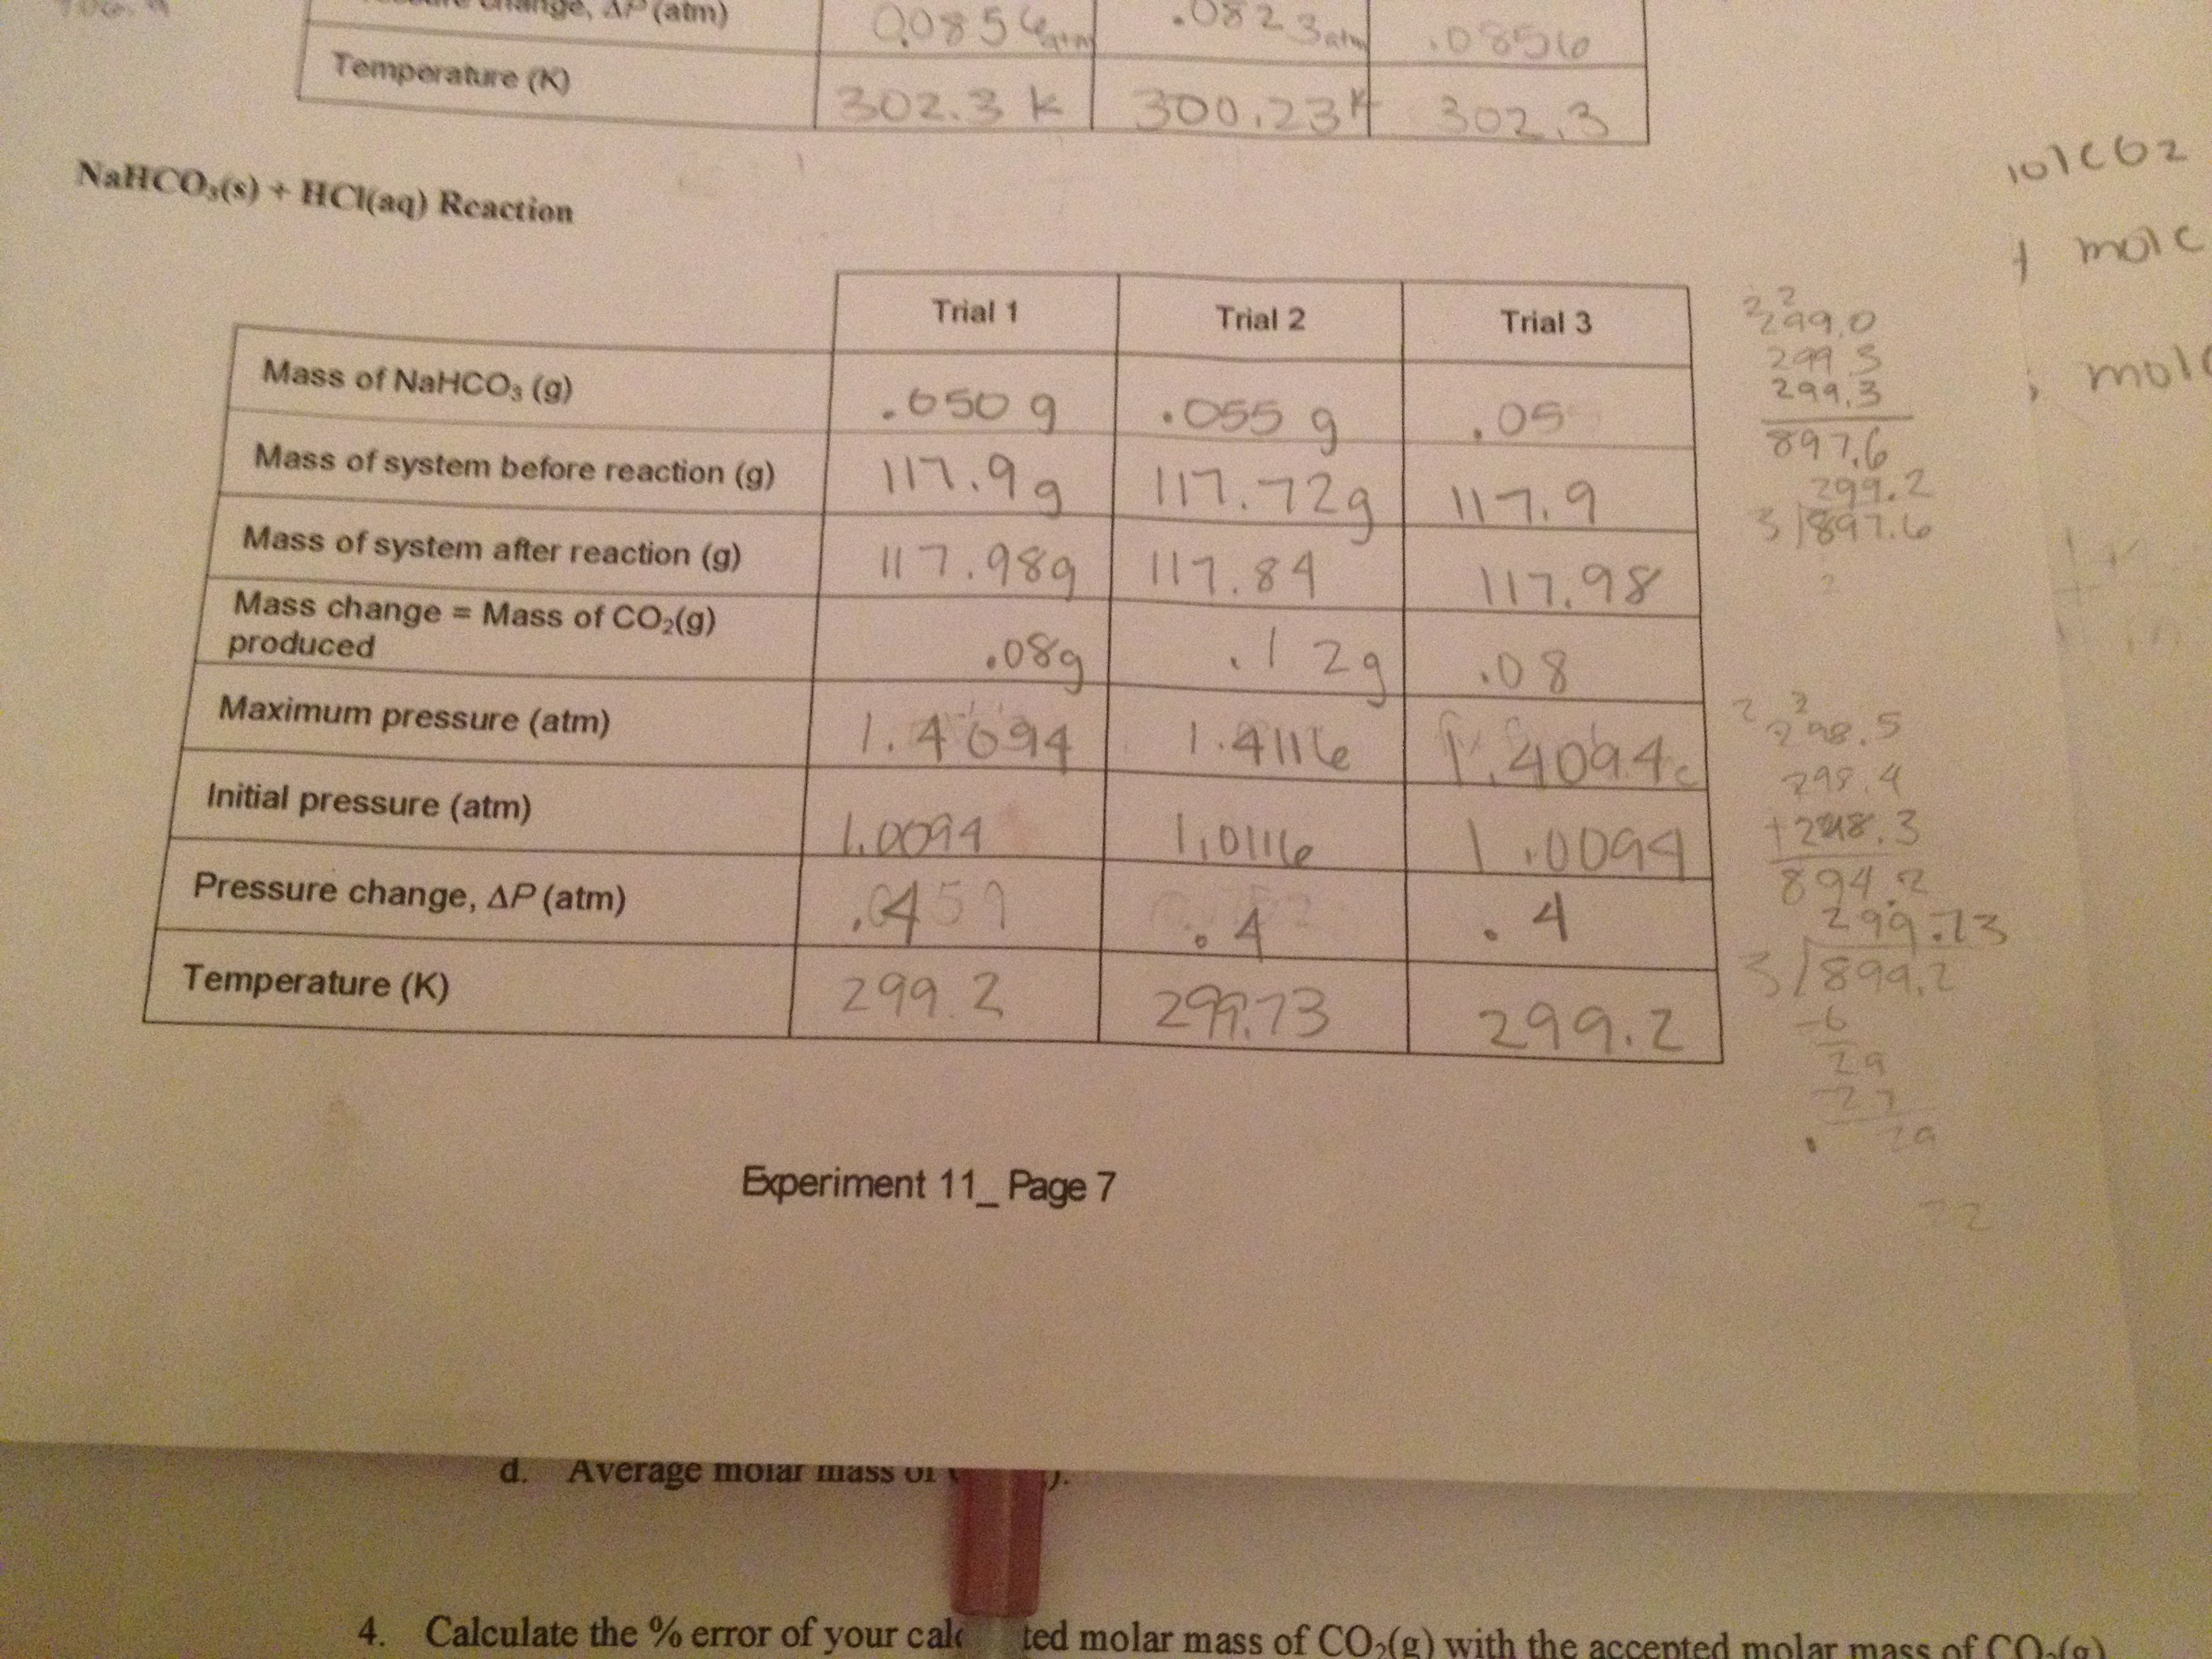 I Need To Calculate The Mass Of Co2 Produced In The Reaction Of